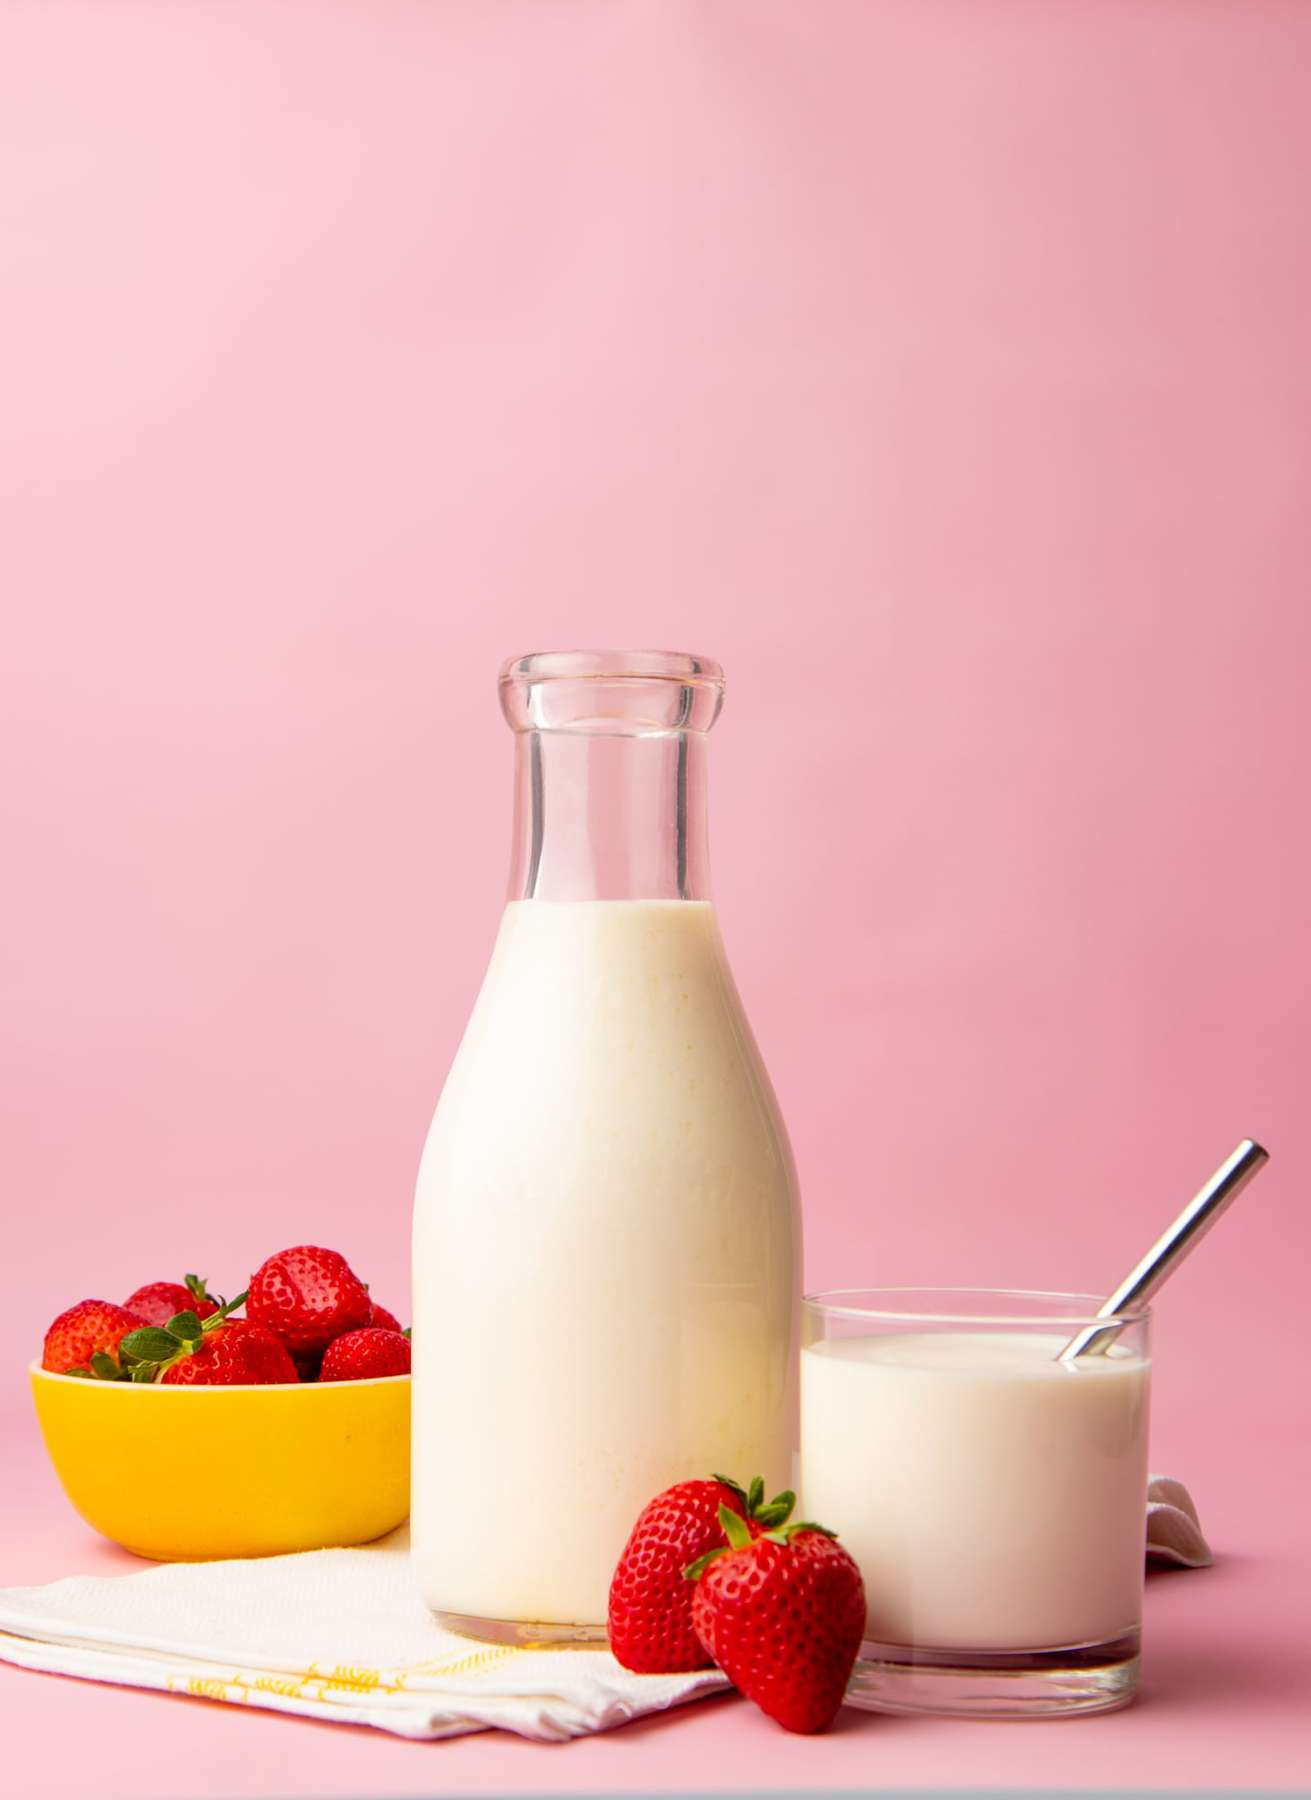 A glass carafe filled with homemade kefir sits on a linen kitchen towel with a full tumbler and a bowl of fresh strawberries on either side of it.